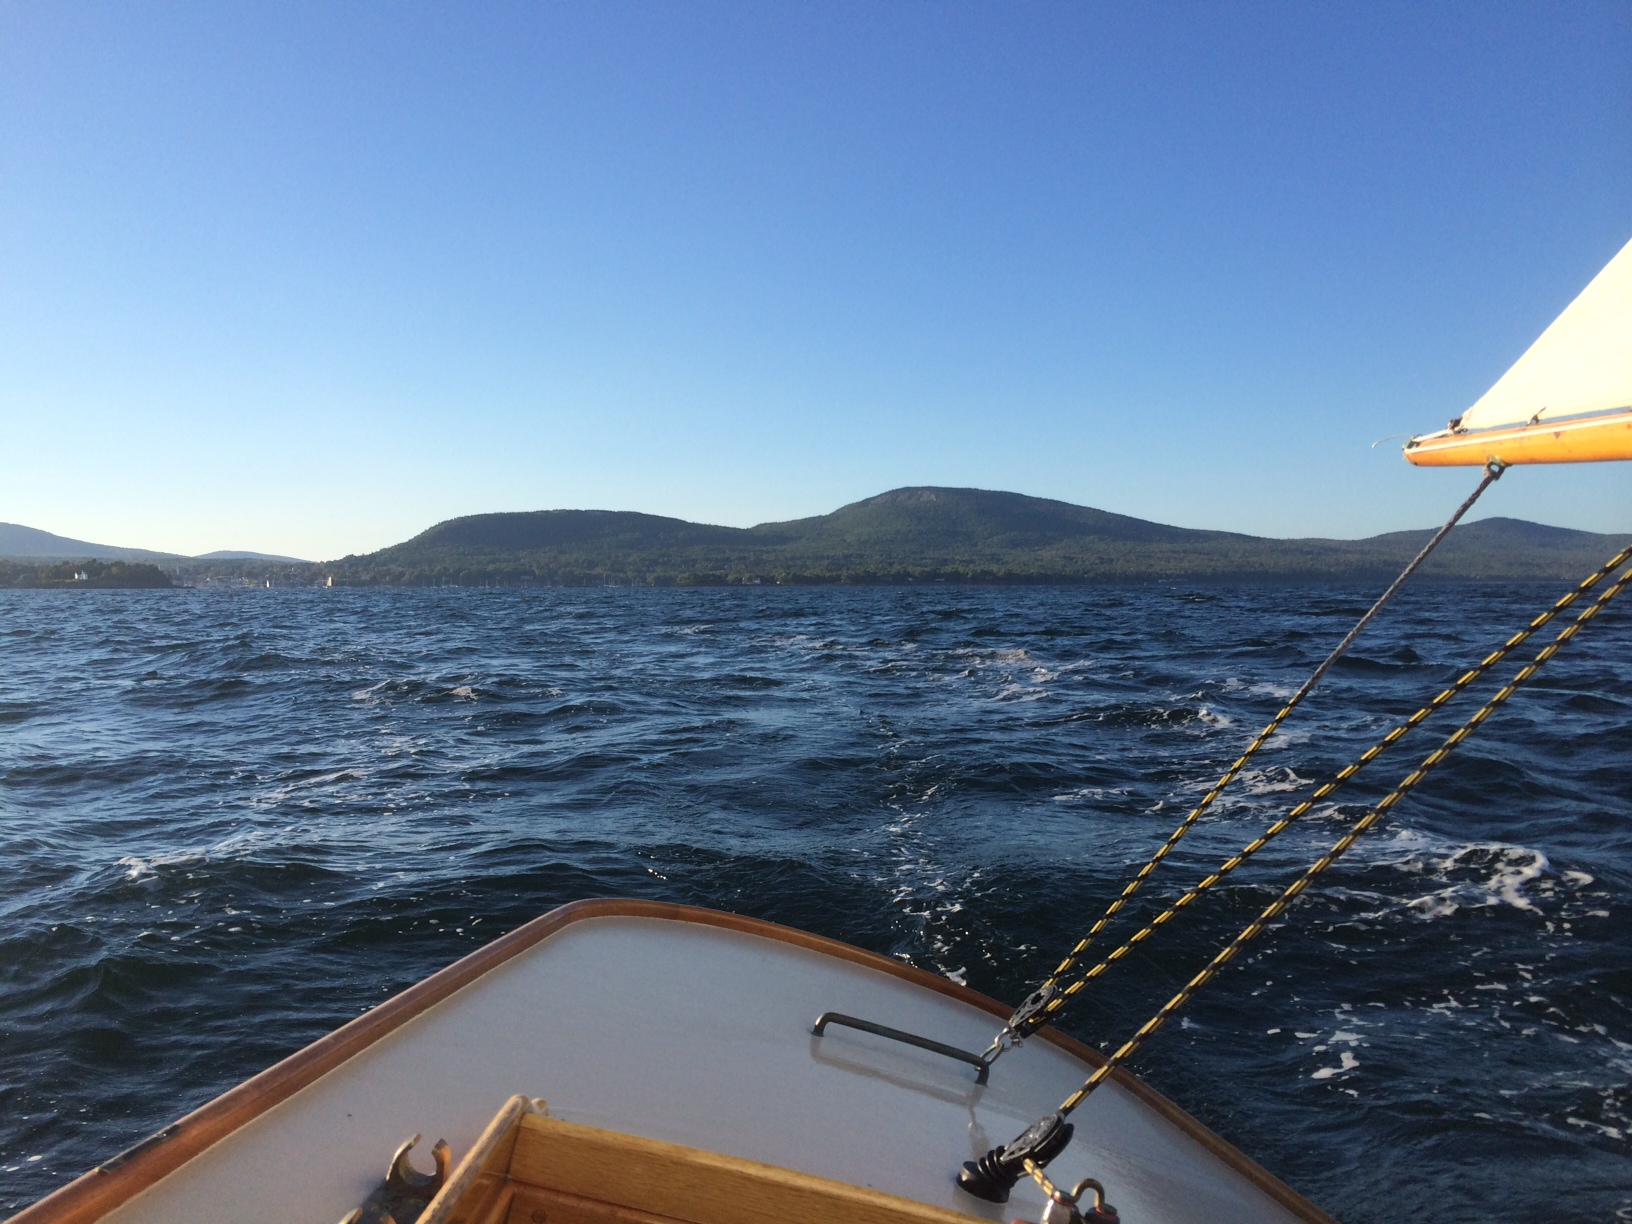 Leaving the Camden Hills behind as Frolic and I sail in Penobscot Bay